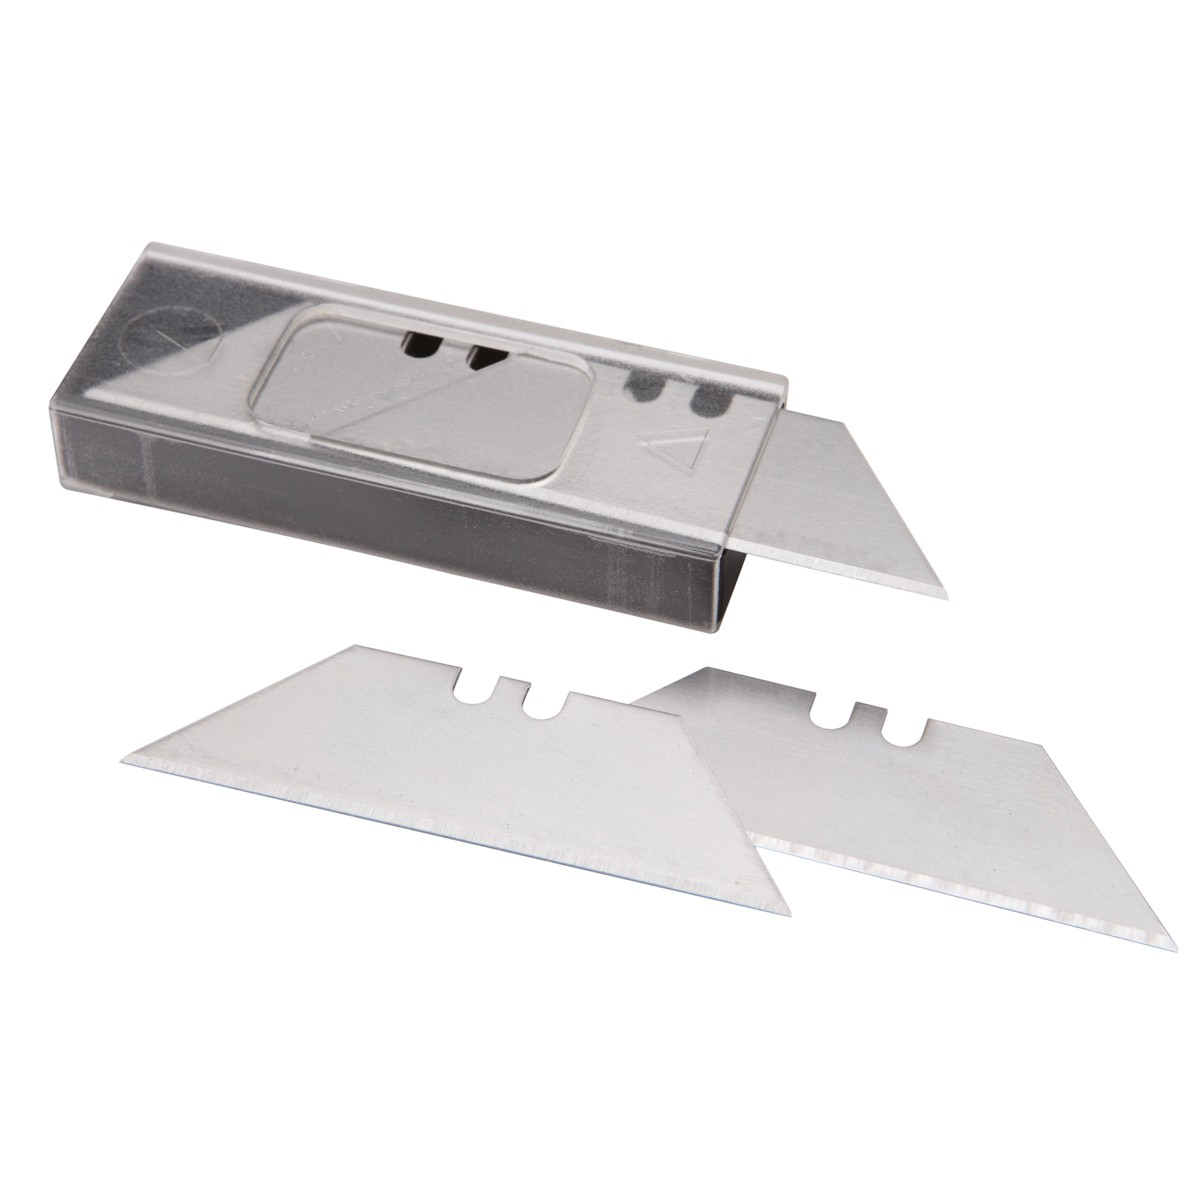 10 Pk. Utility Blades with Dispenser